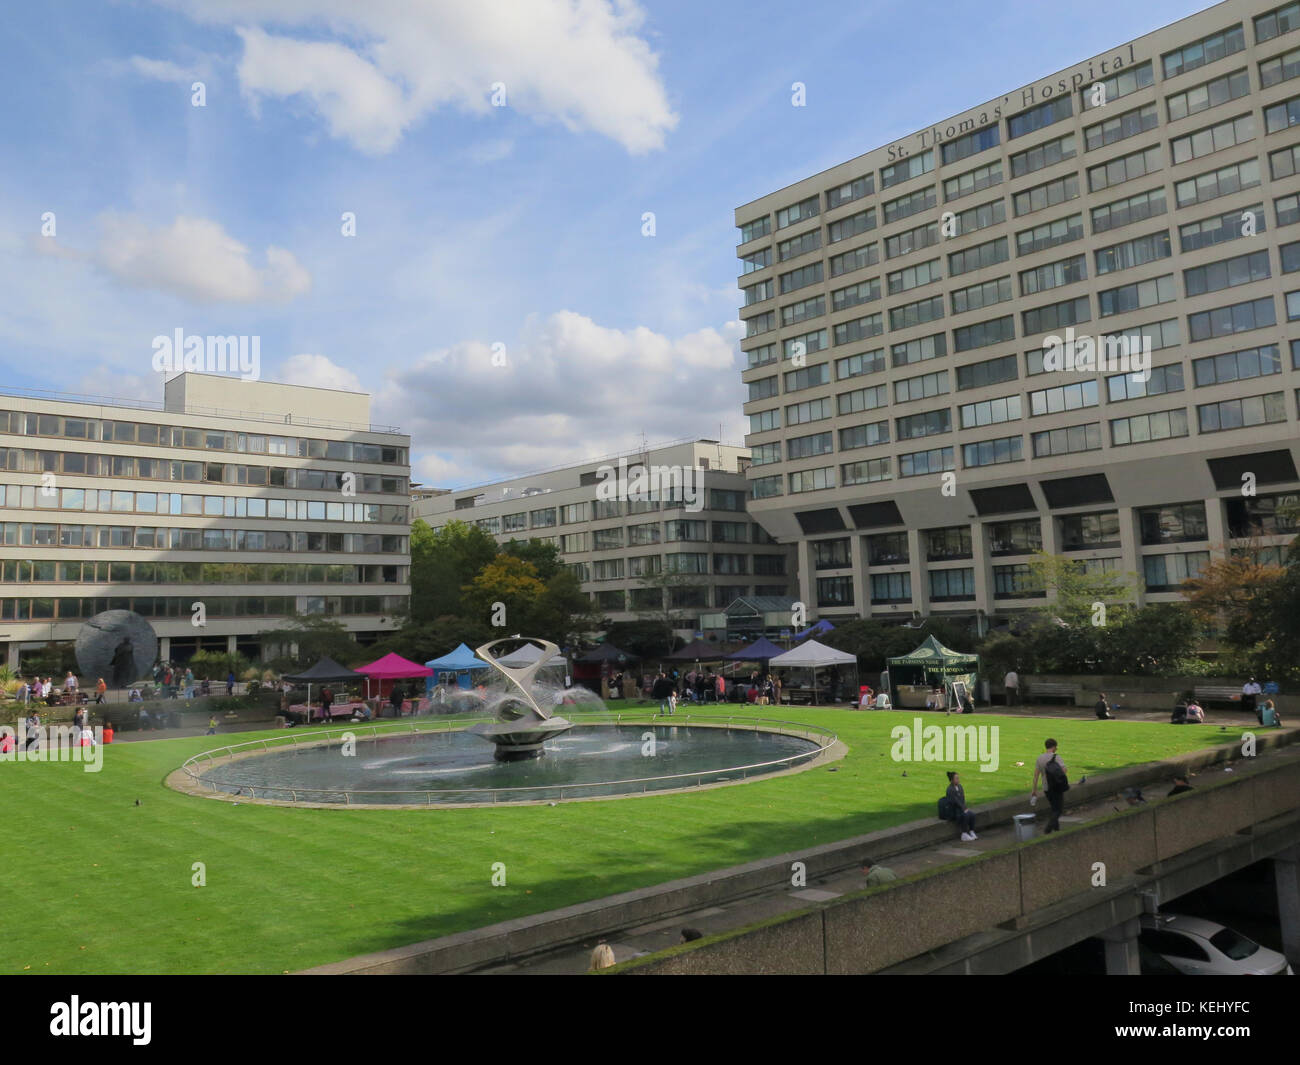 St Thomas' Hospital is a large NHS teaching hospital in Central London, England - Stock Image